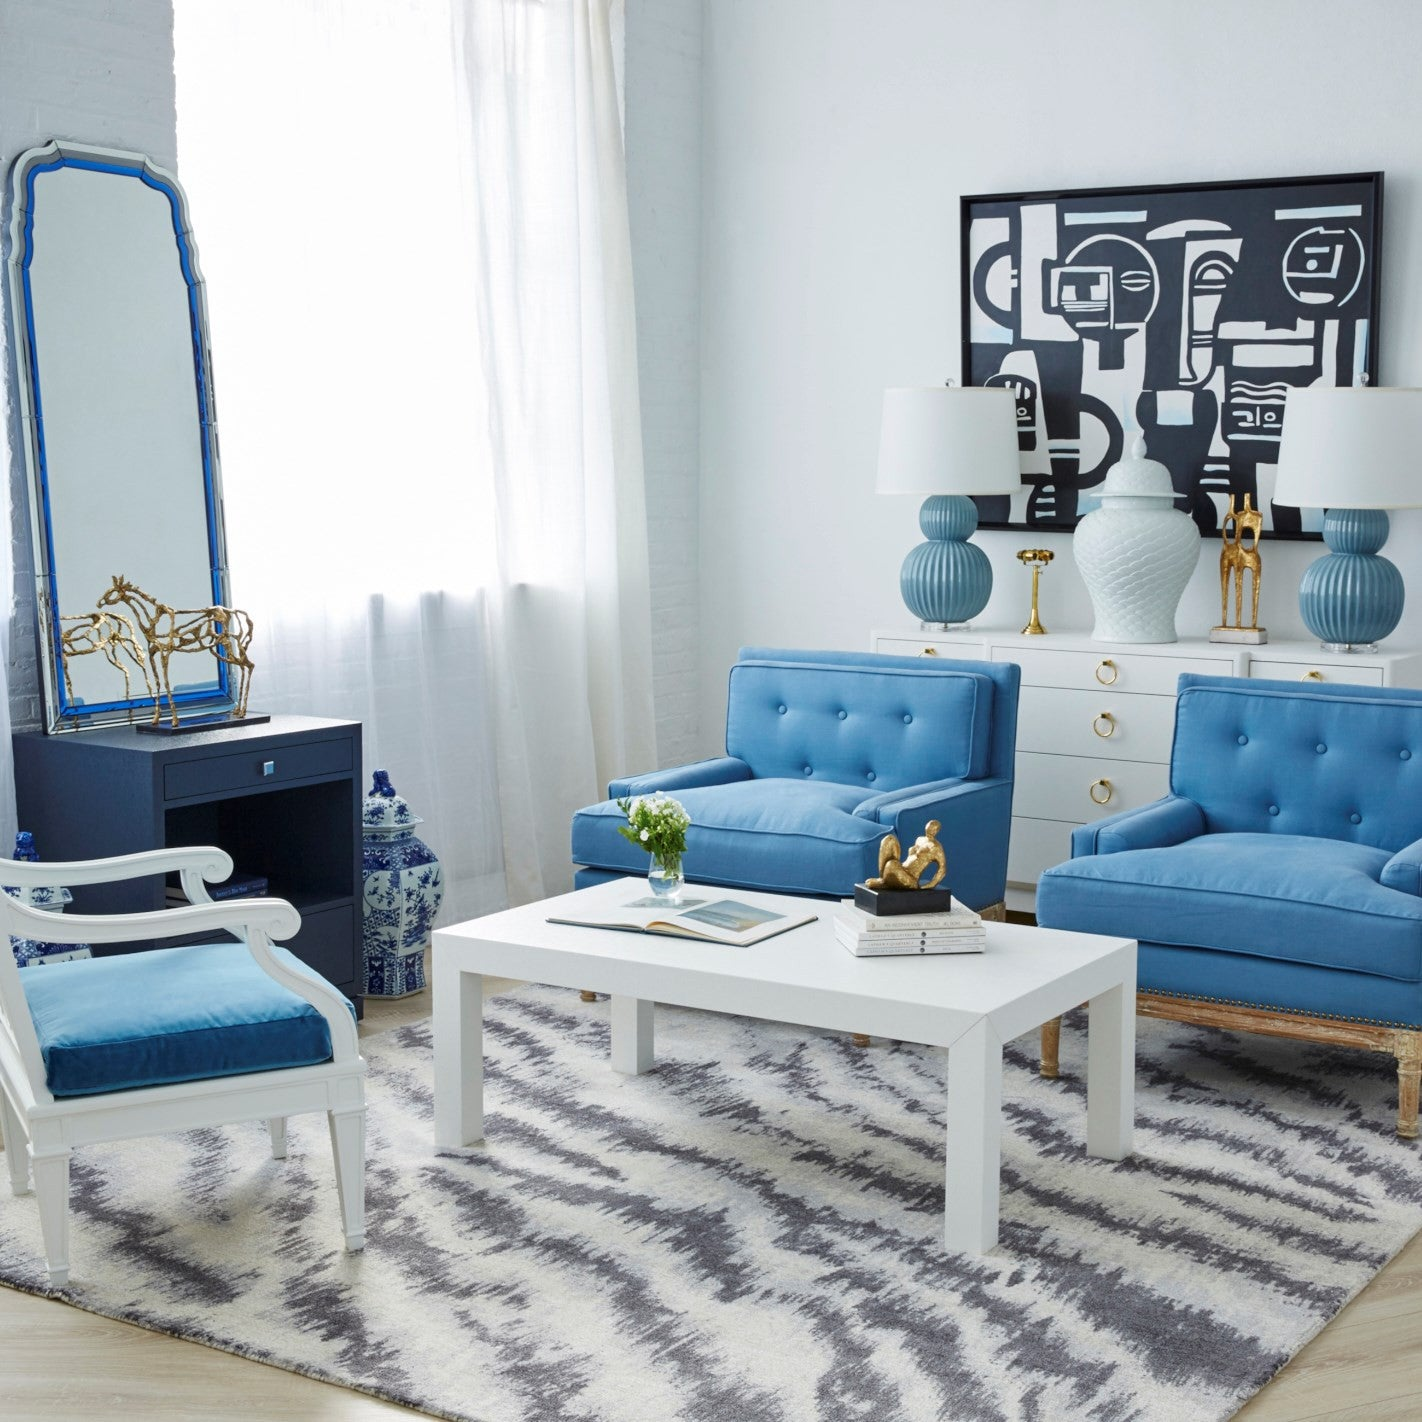 Parson coffee table in navy blue bungalow 5 - Bungalow 5 Parsons Coffee Table White Room View